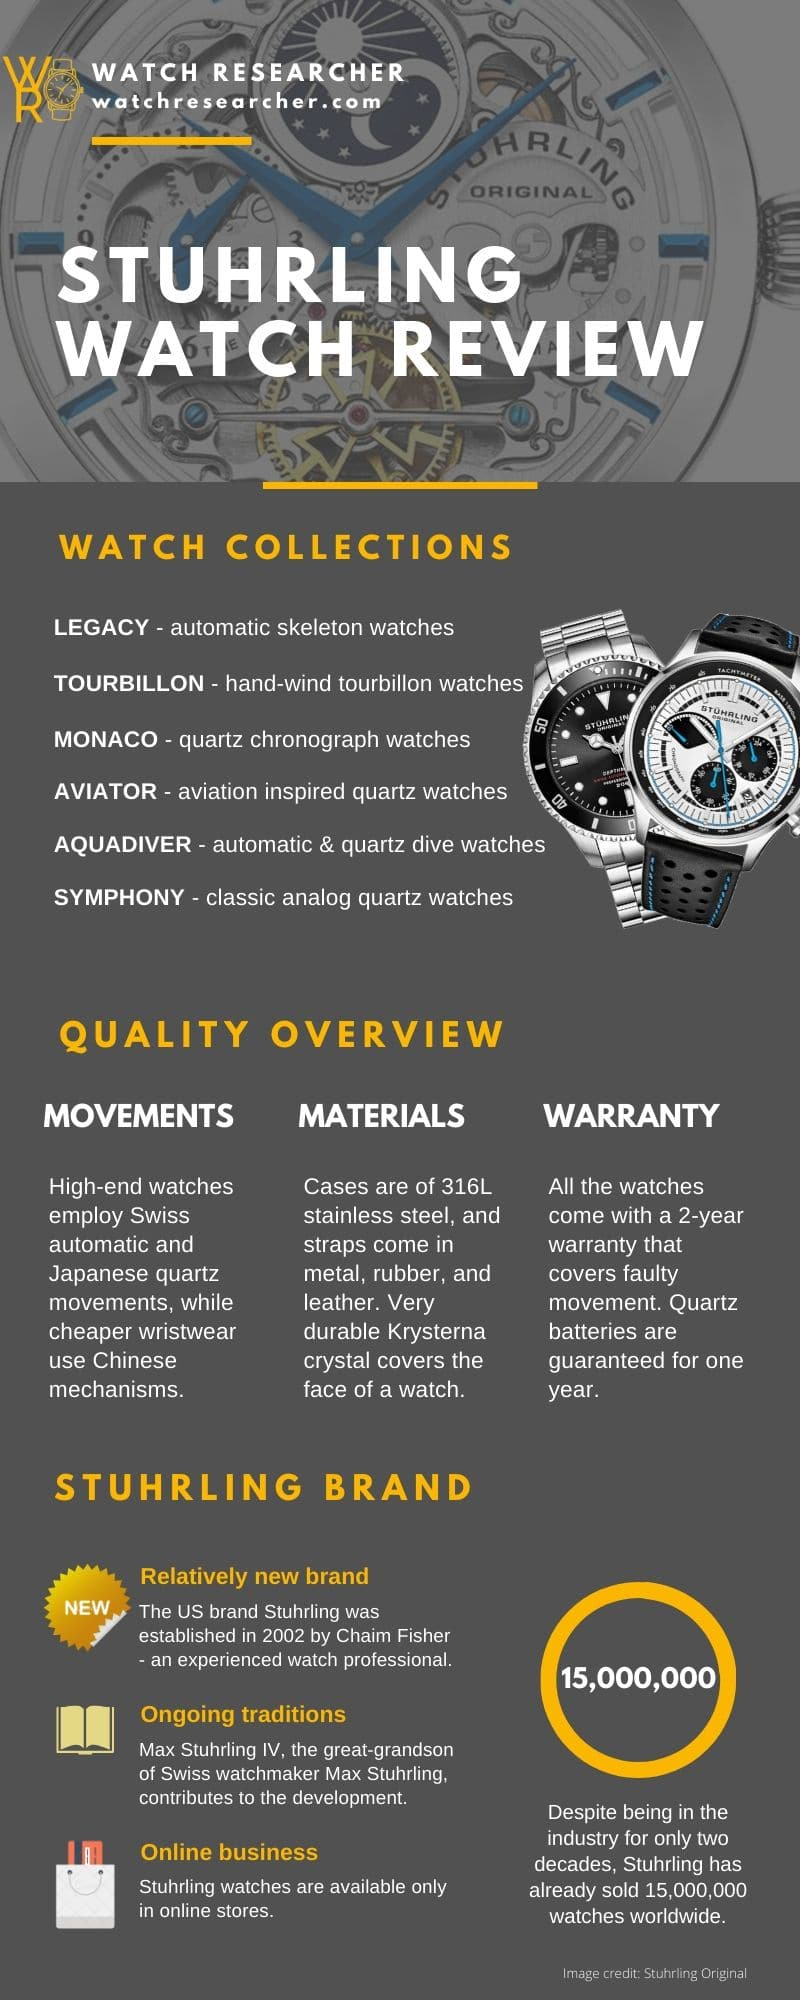 Stuhrling watch review infographic